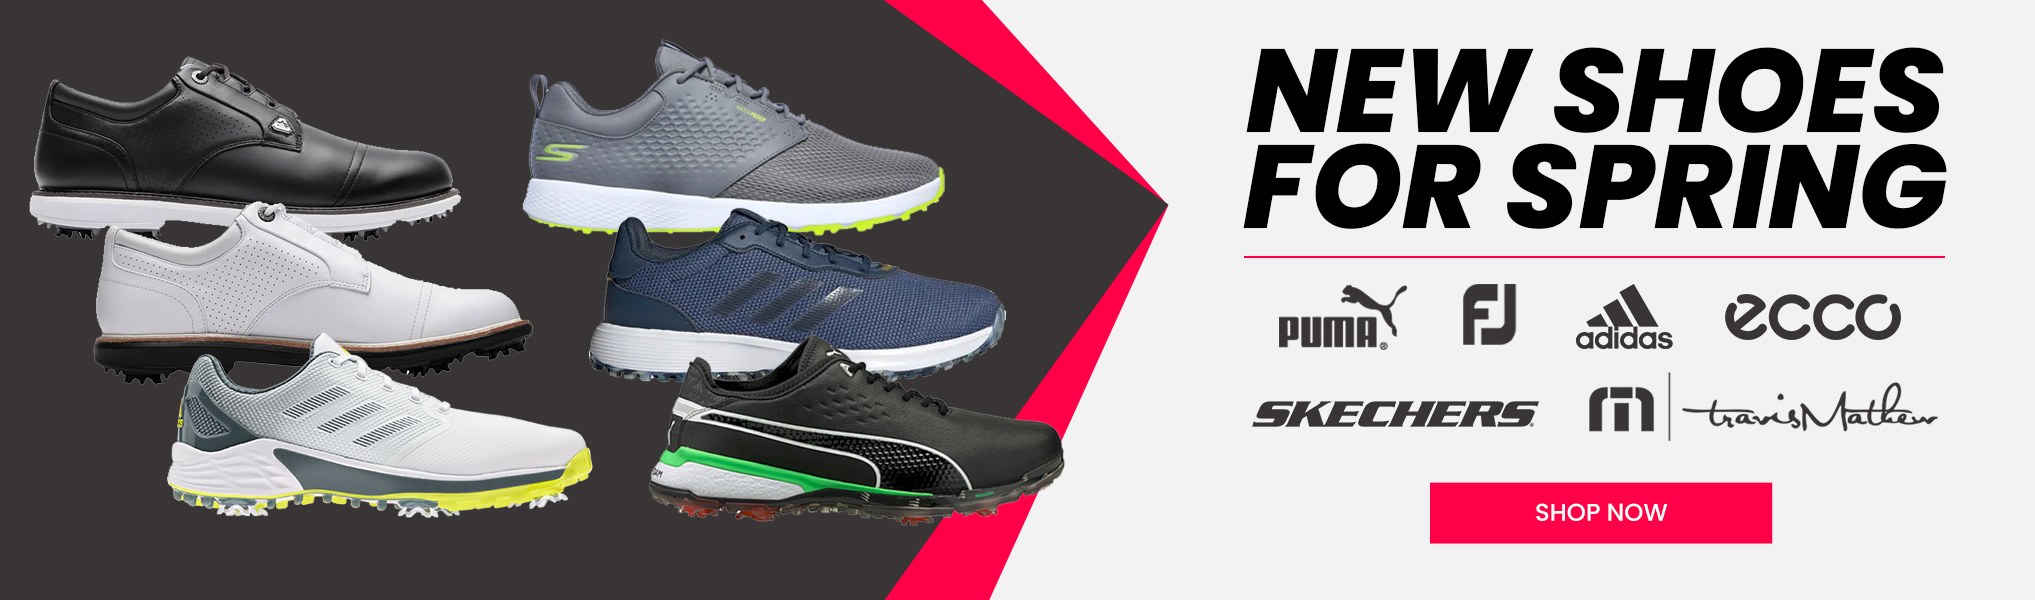 New golf shoes for spring. Shop shoes from brand like Adidas, Puma, Footjoy, Travis Mathew, Ecco, and Skechers. Shop Now.